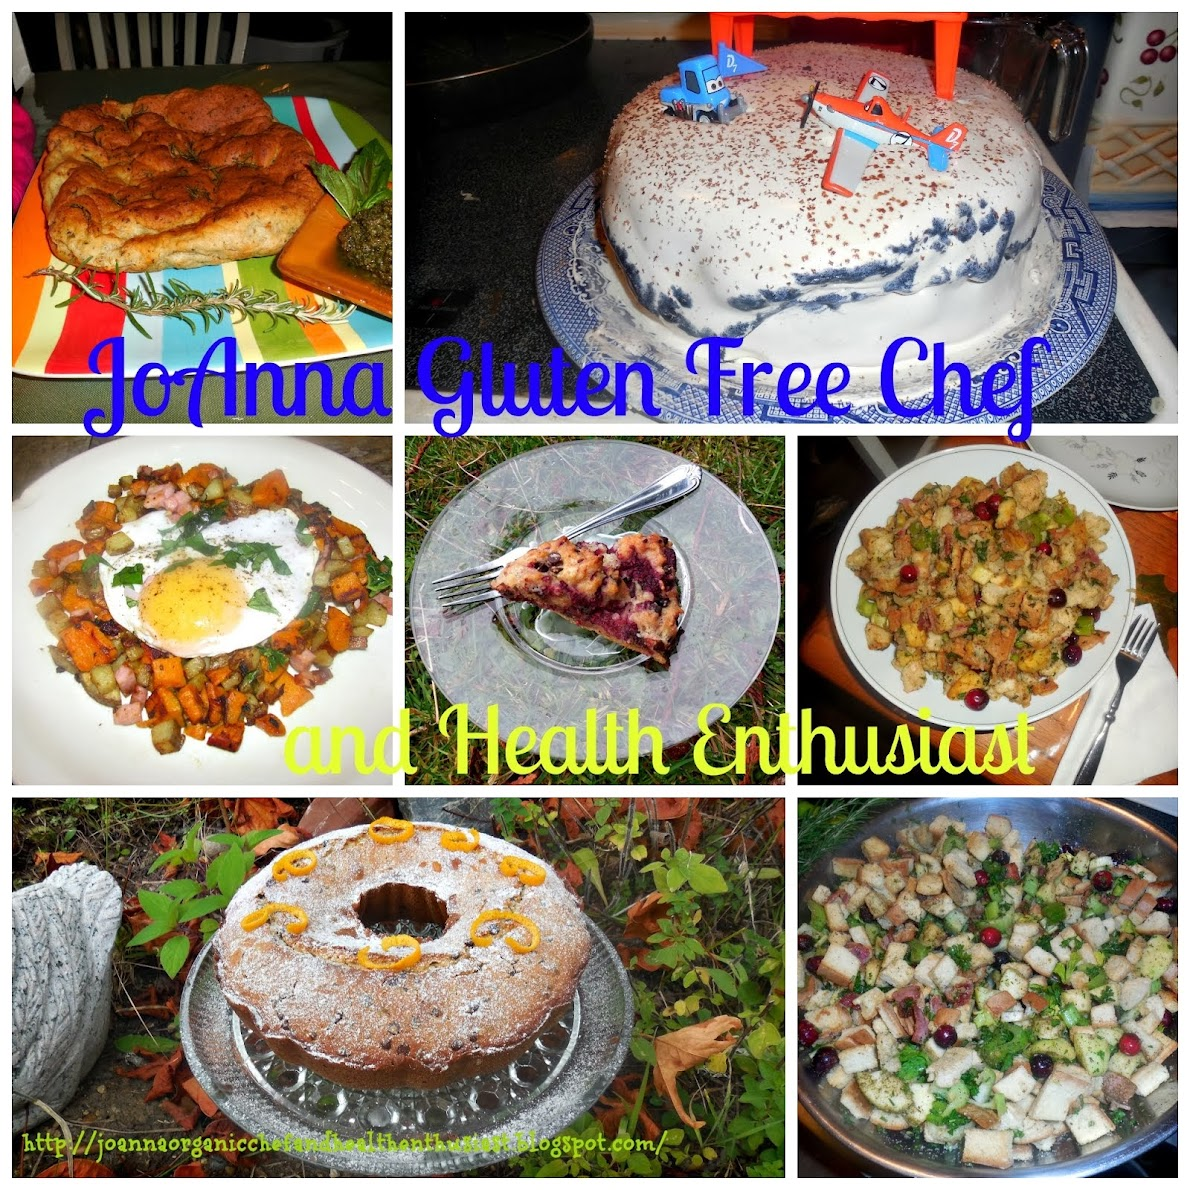 JoAnna: GlutenFree Chef and Health Enthusiast